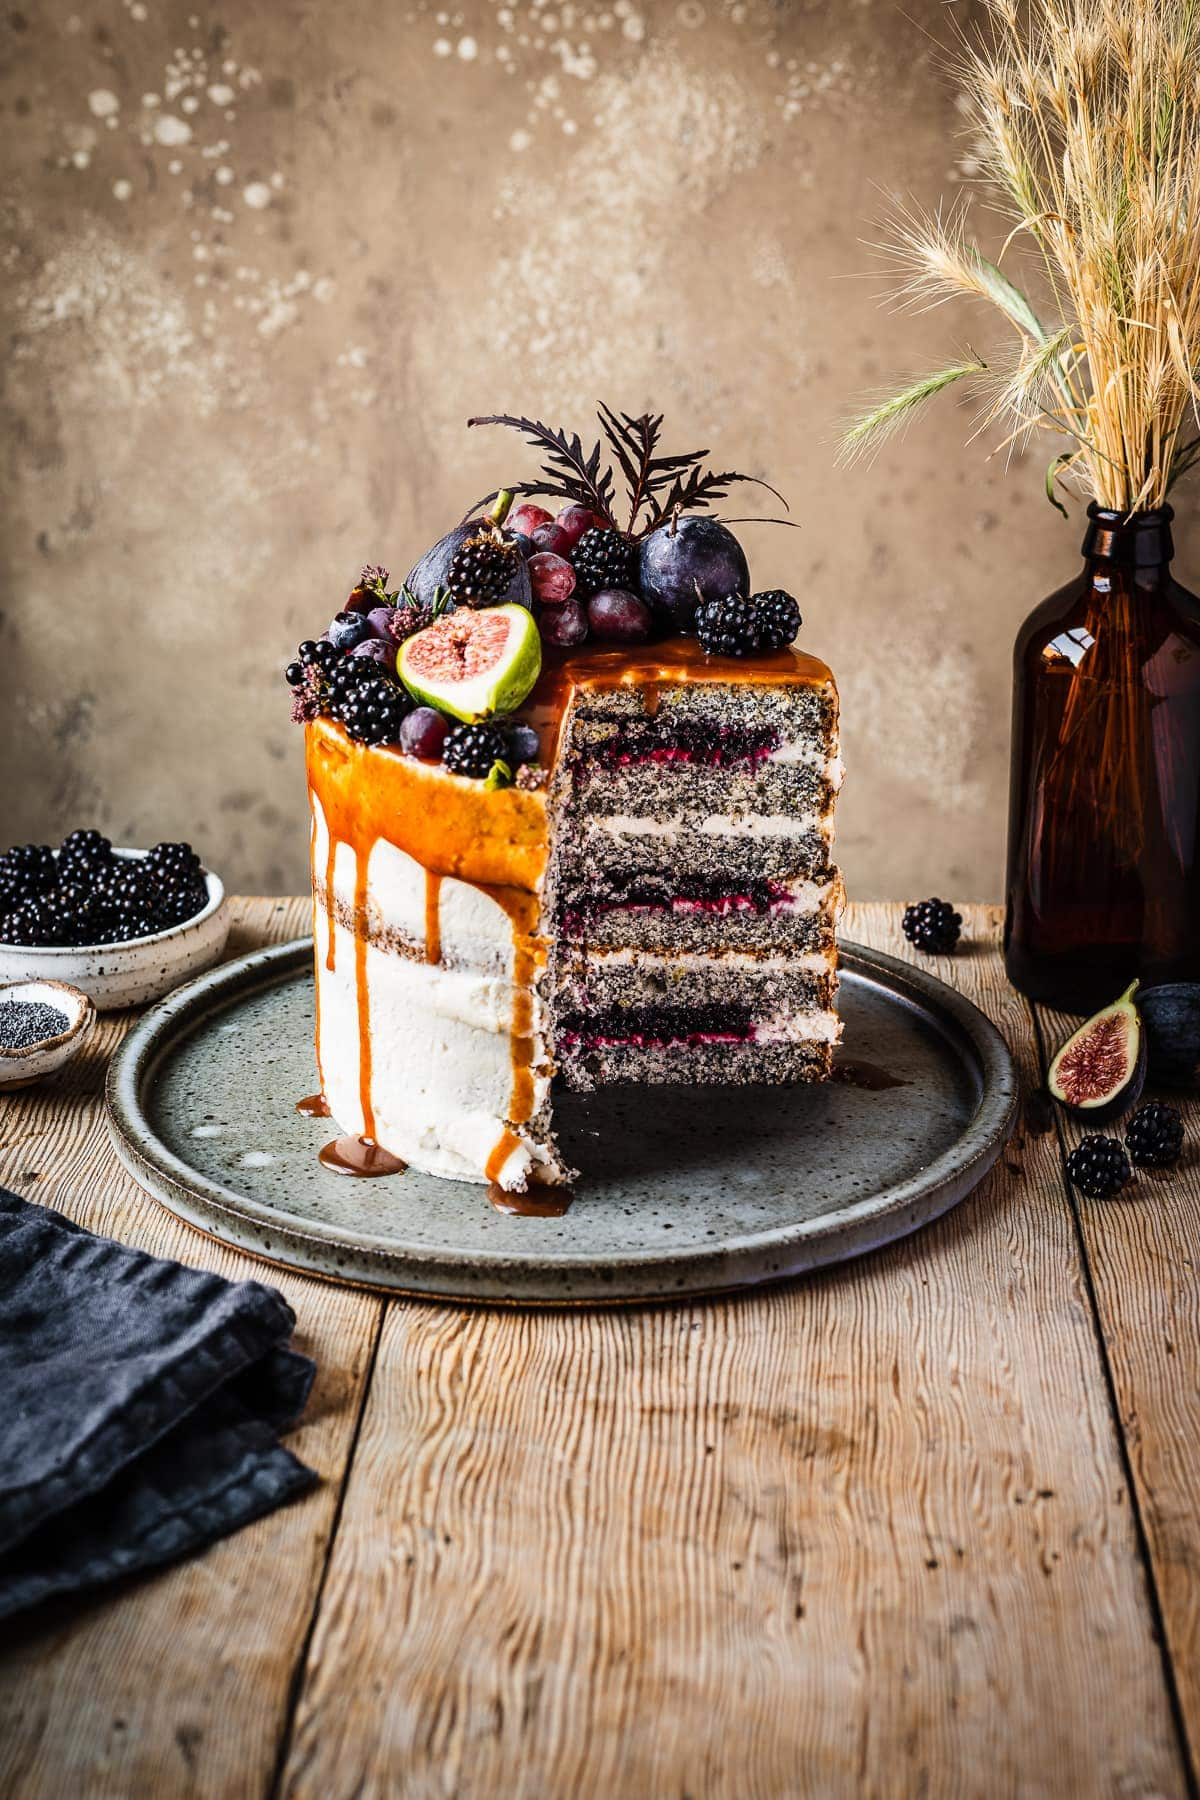 A cross section of a white layer cake with a caramel drip and a crown of late summer fruit on top. Slices are missing, revealing layers of poppy seed cake, vibrant purple jam and white frosting. The cake sits on a blue grey ceramic platter on a wooden table with forks and small bowls of poppy seeds and blackberries nearby. There is a warm tan stone background behind the cake and table.